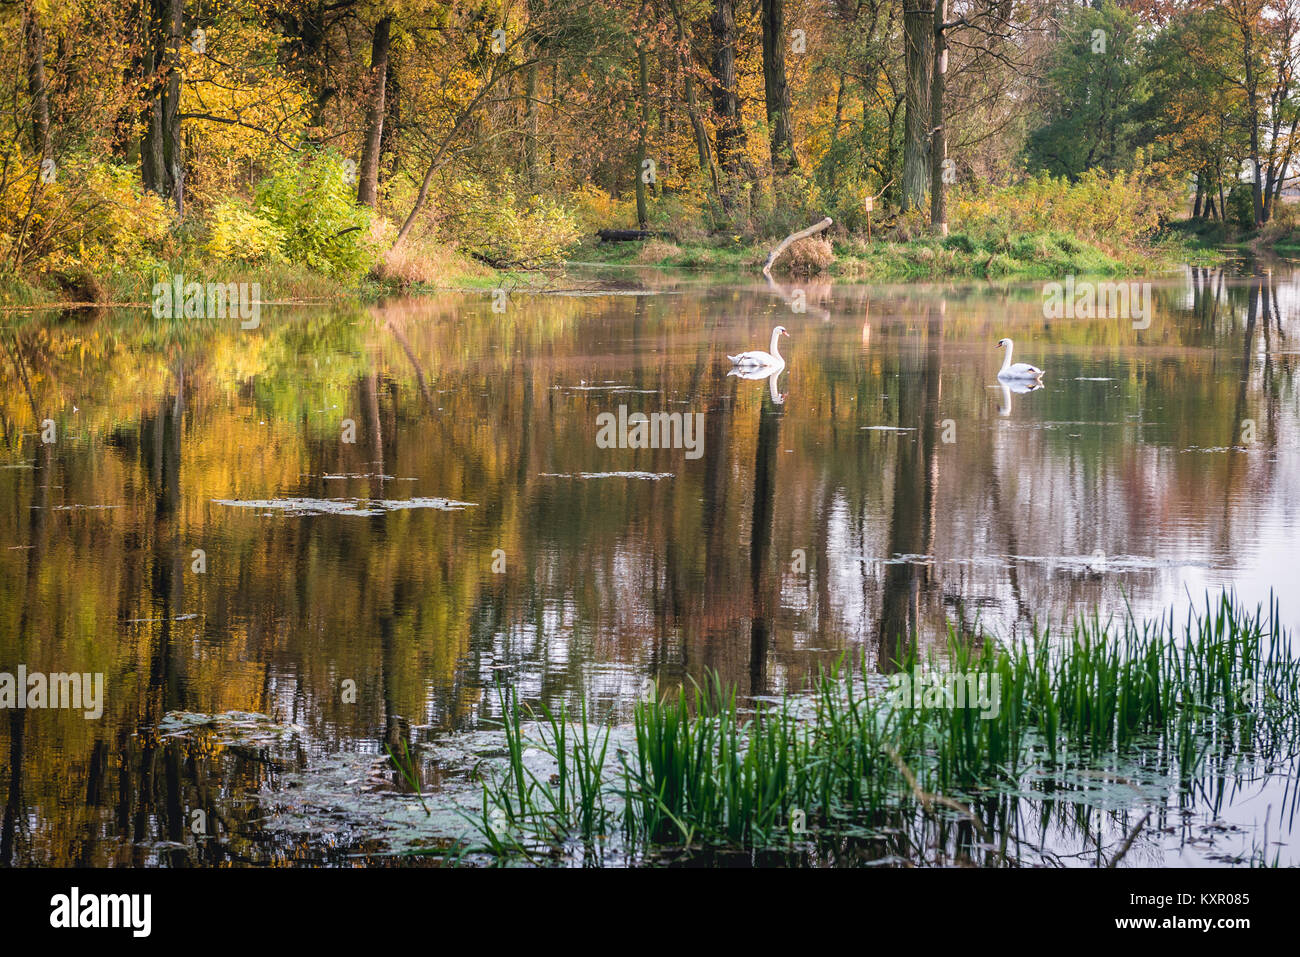 Swans on a pond in Brochow village, Sochaczew County in Masovian Voivodeship of Poland - Stock Image